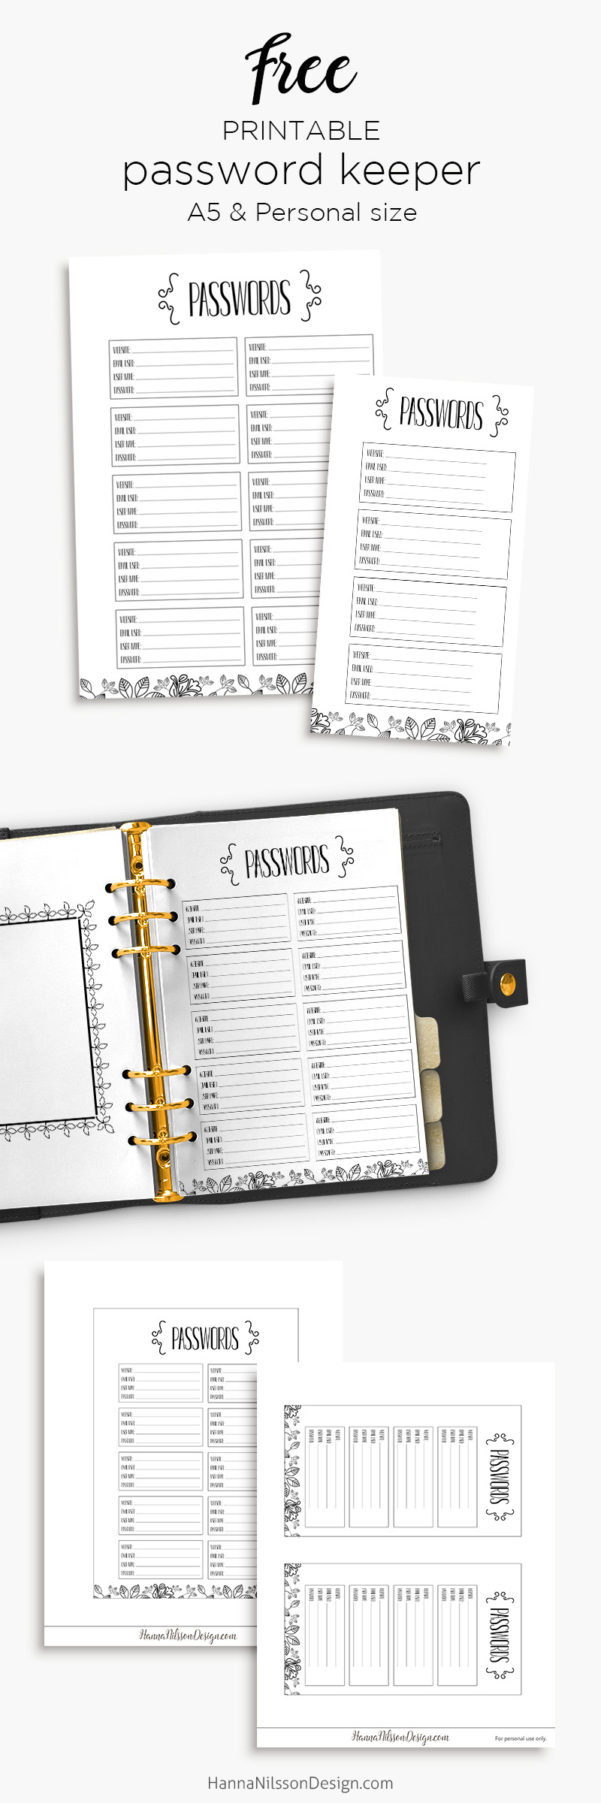 Password Keeper | Free Planner Printable – Hanna Nilsson Design With Free Printable Password Keeper